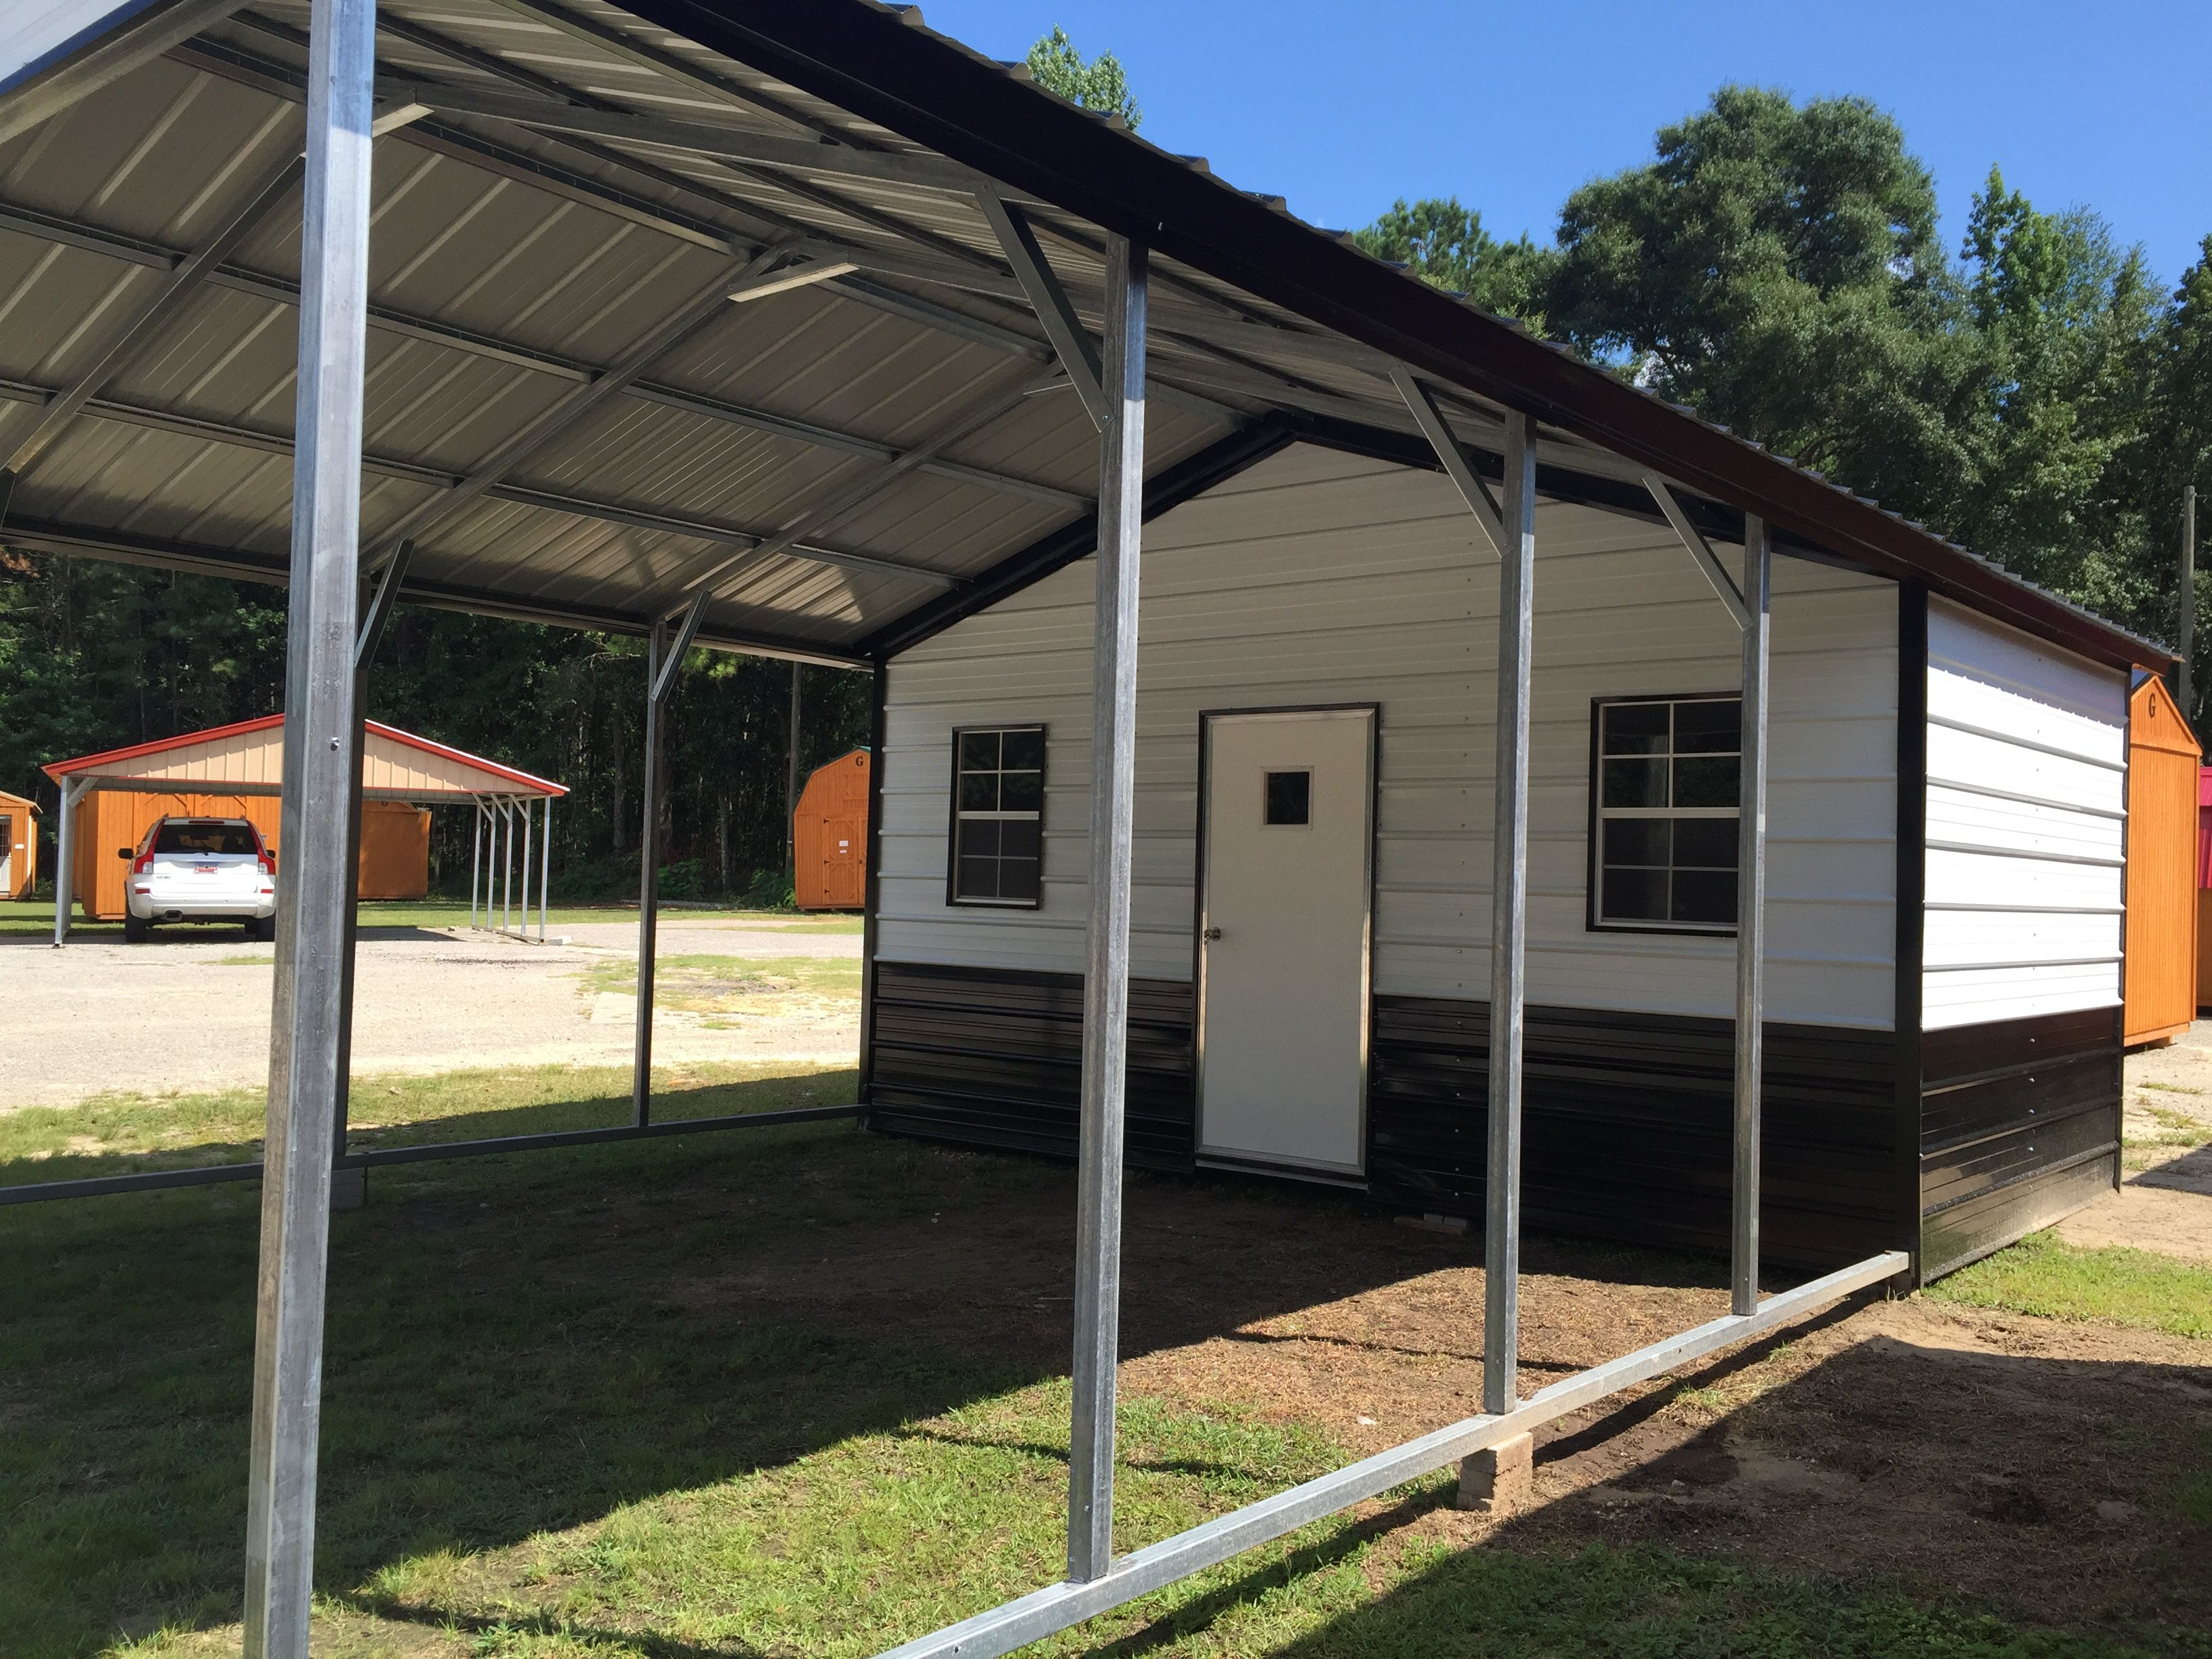 18x31 Carport And Storage Combo Visit Our Dealership For More Enclosed Metal Building Options Portable Carport Carport Metal Buildings